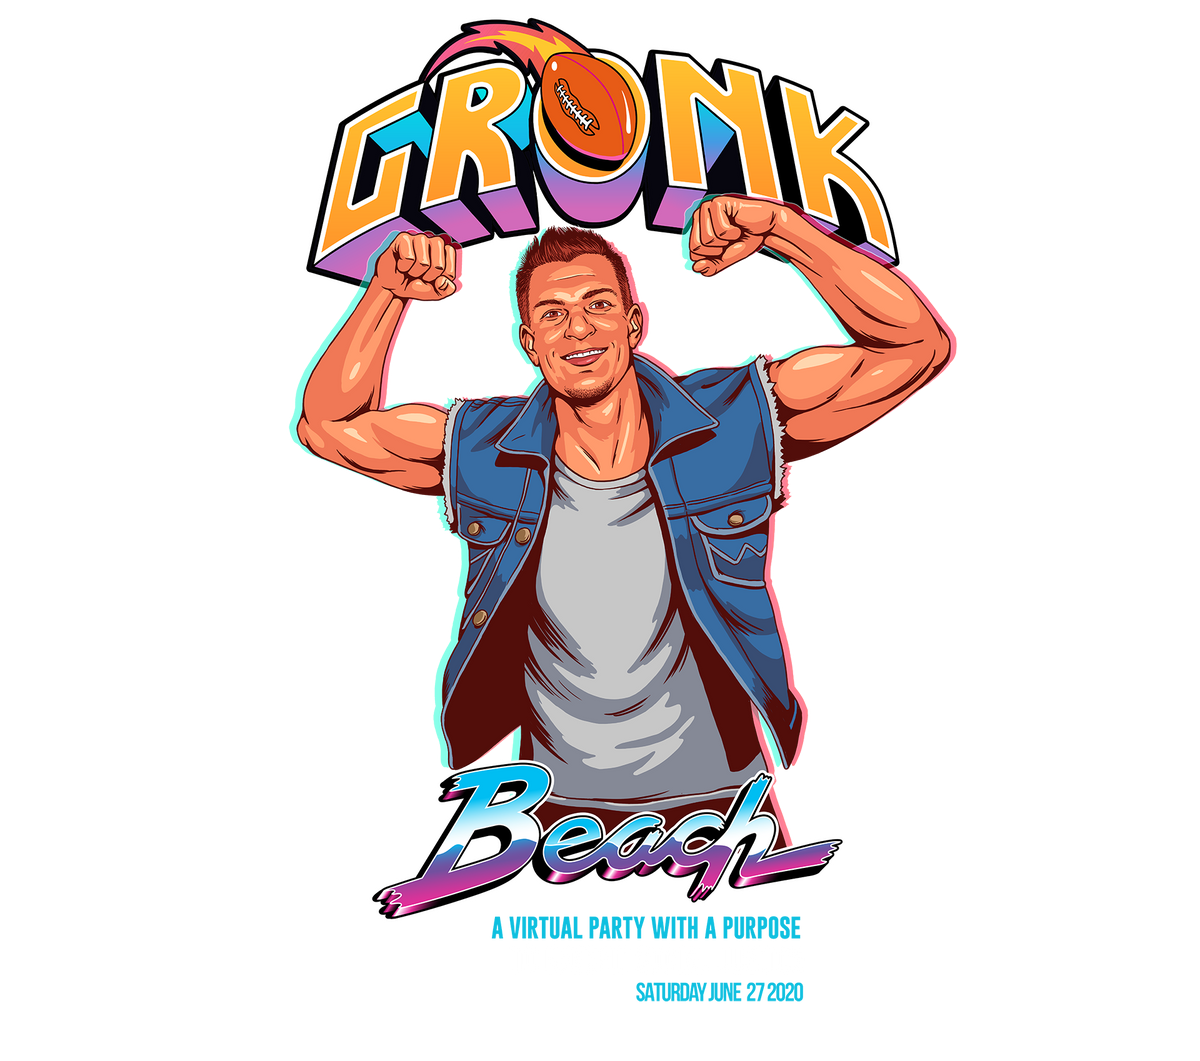 Team Gronk T-Shirt